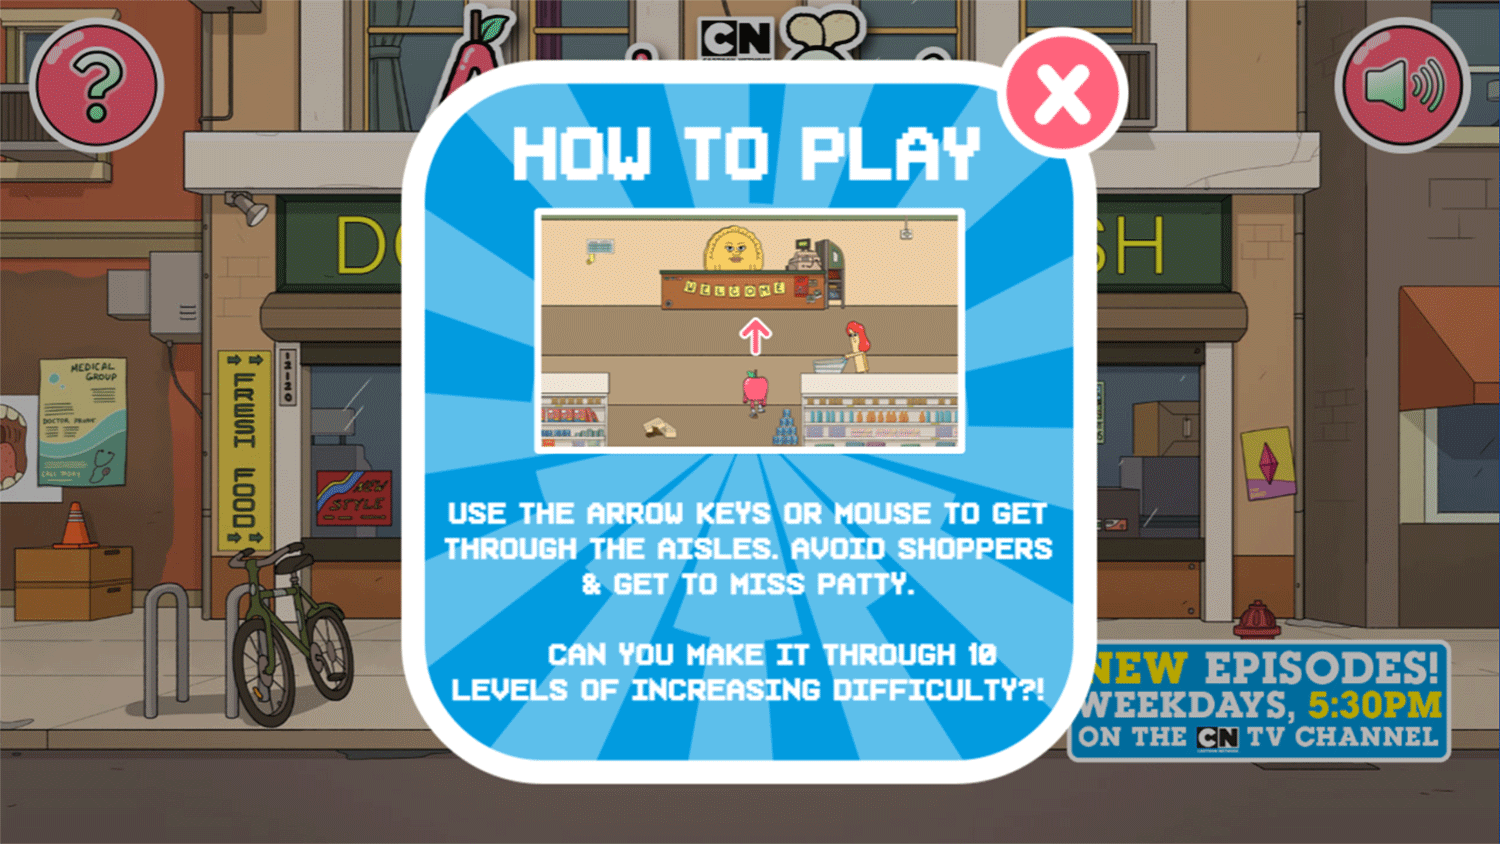 Apple & Onion Dollar Store Dash Game How To Play Screenshot.